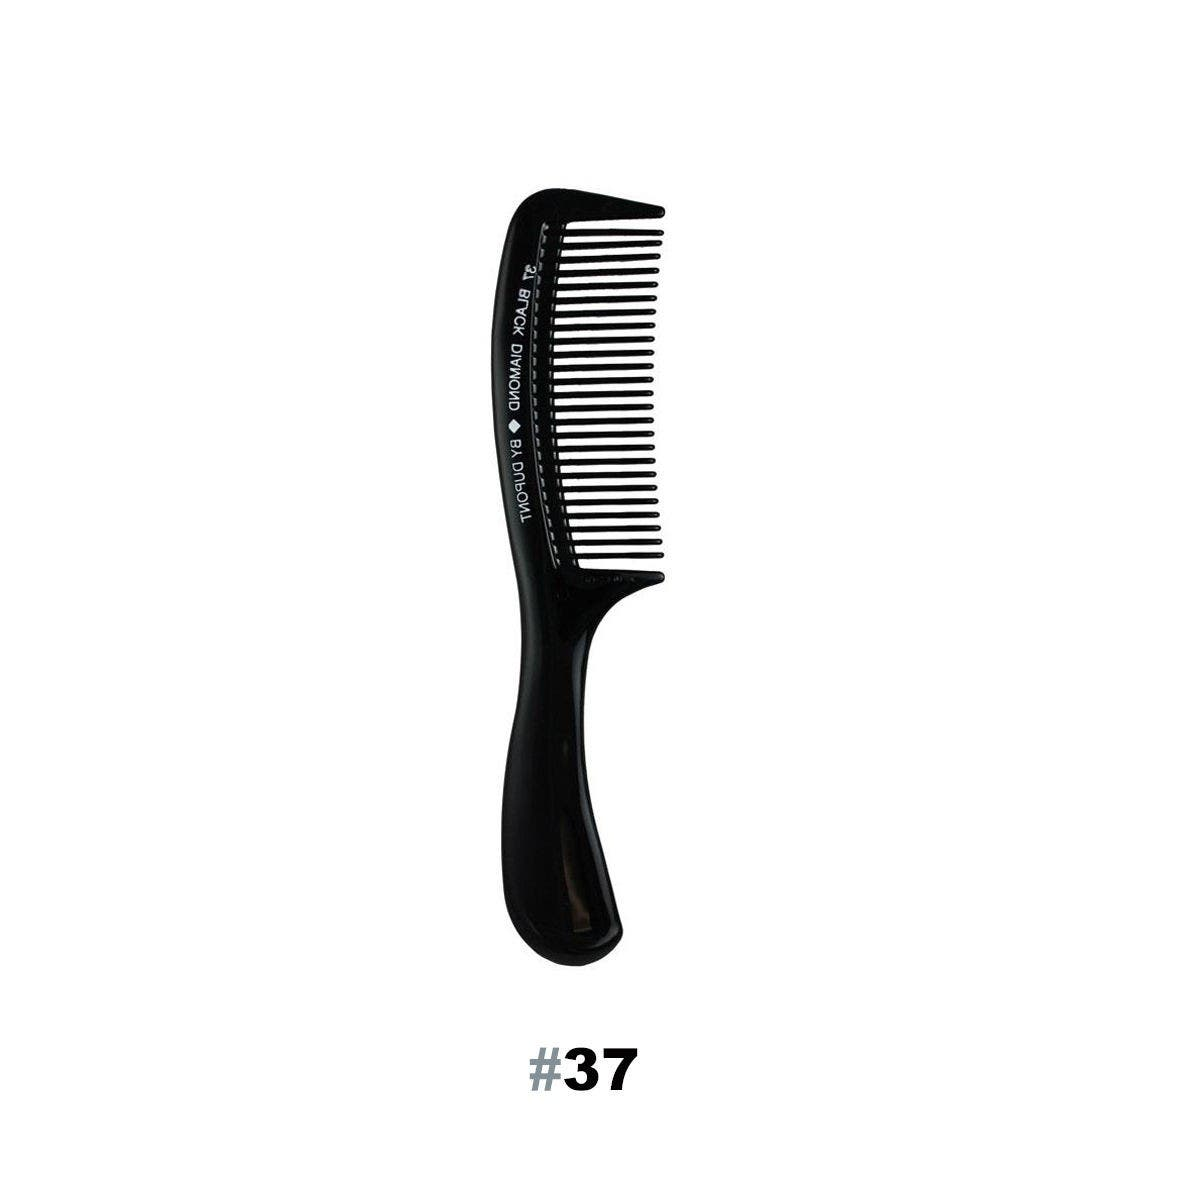 "BLACK DIAMOND #37 Wide Tooth Basin 9"" Hair Comb - Made in USA"